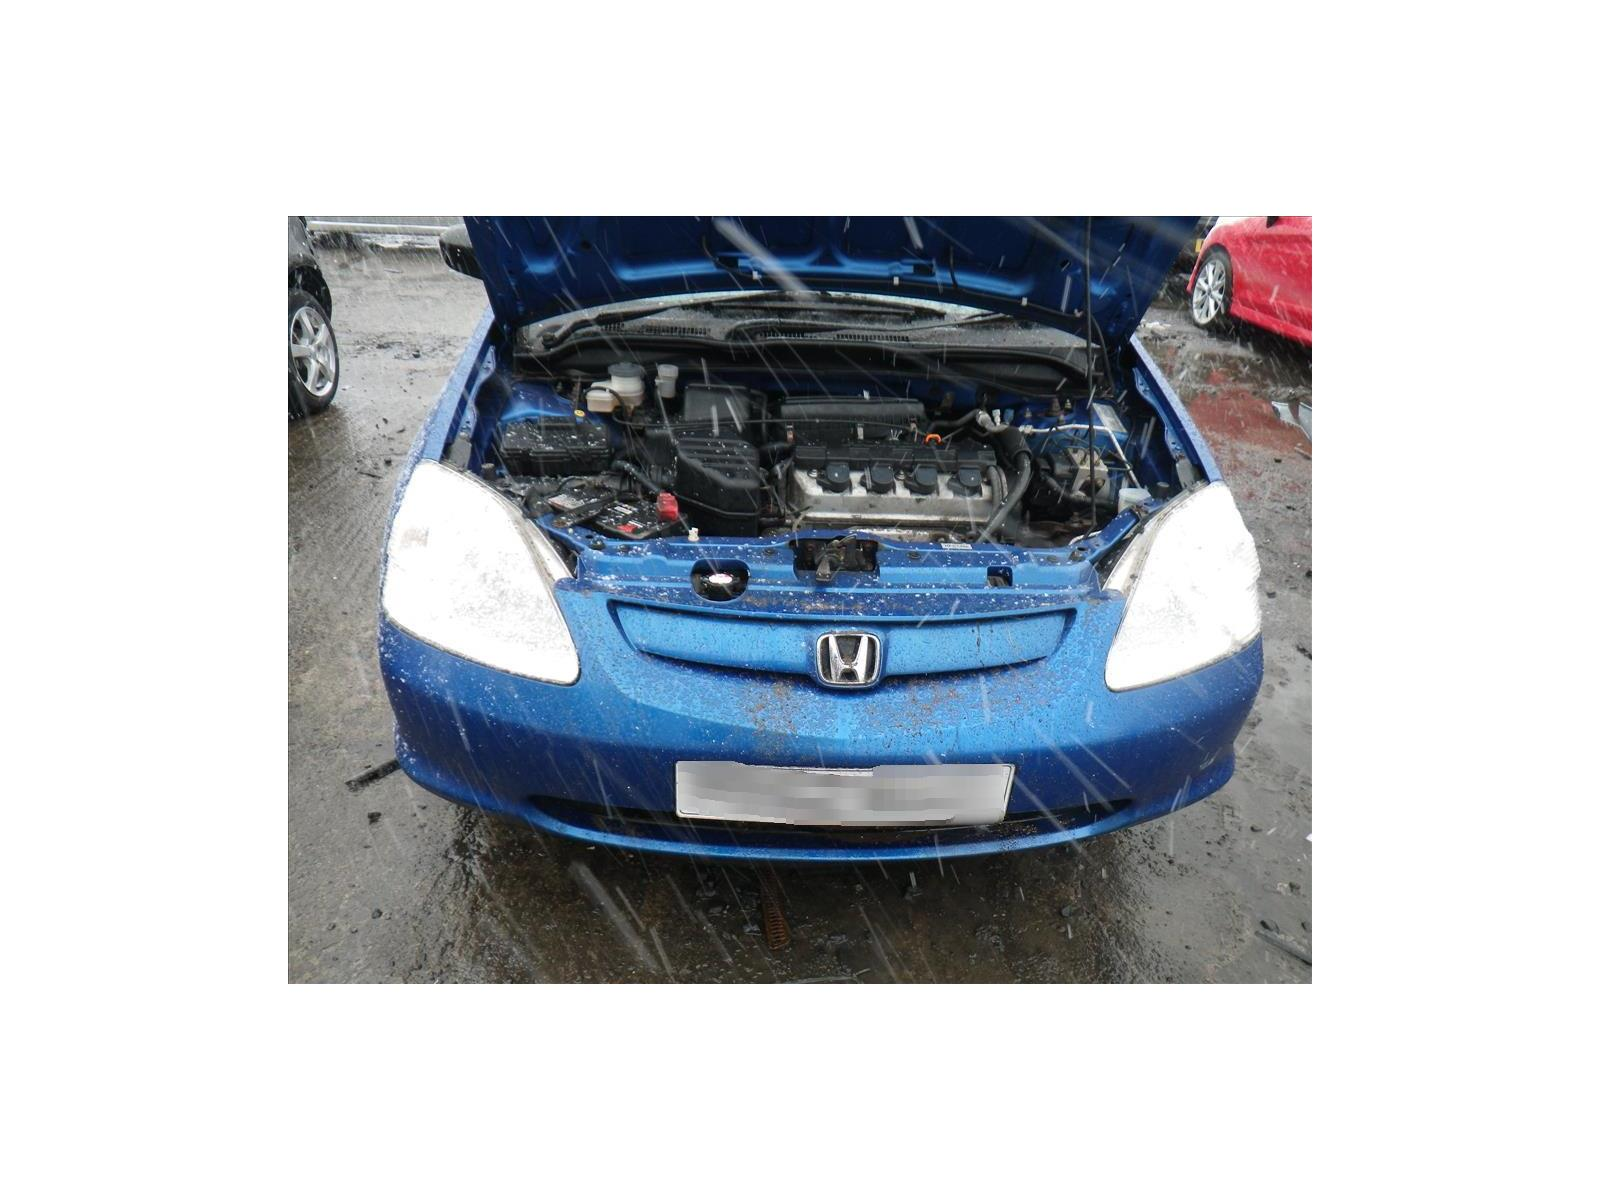 2002 Honda Civic Vision 5 Door Hatchback (Petrol / Manual) breaking for  used and spare parts from Burnside Motors, Auto Salvage Dealers in Leven,  Fife